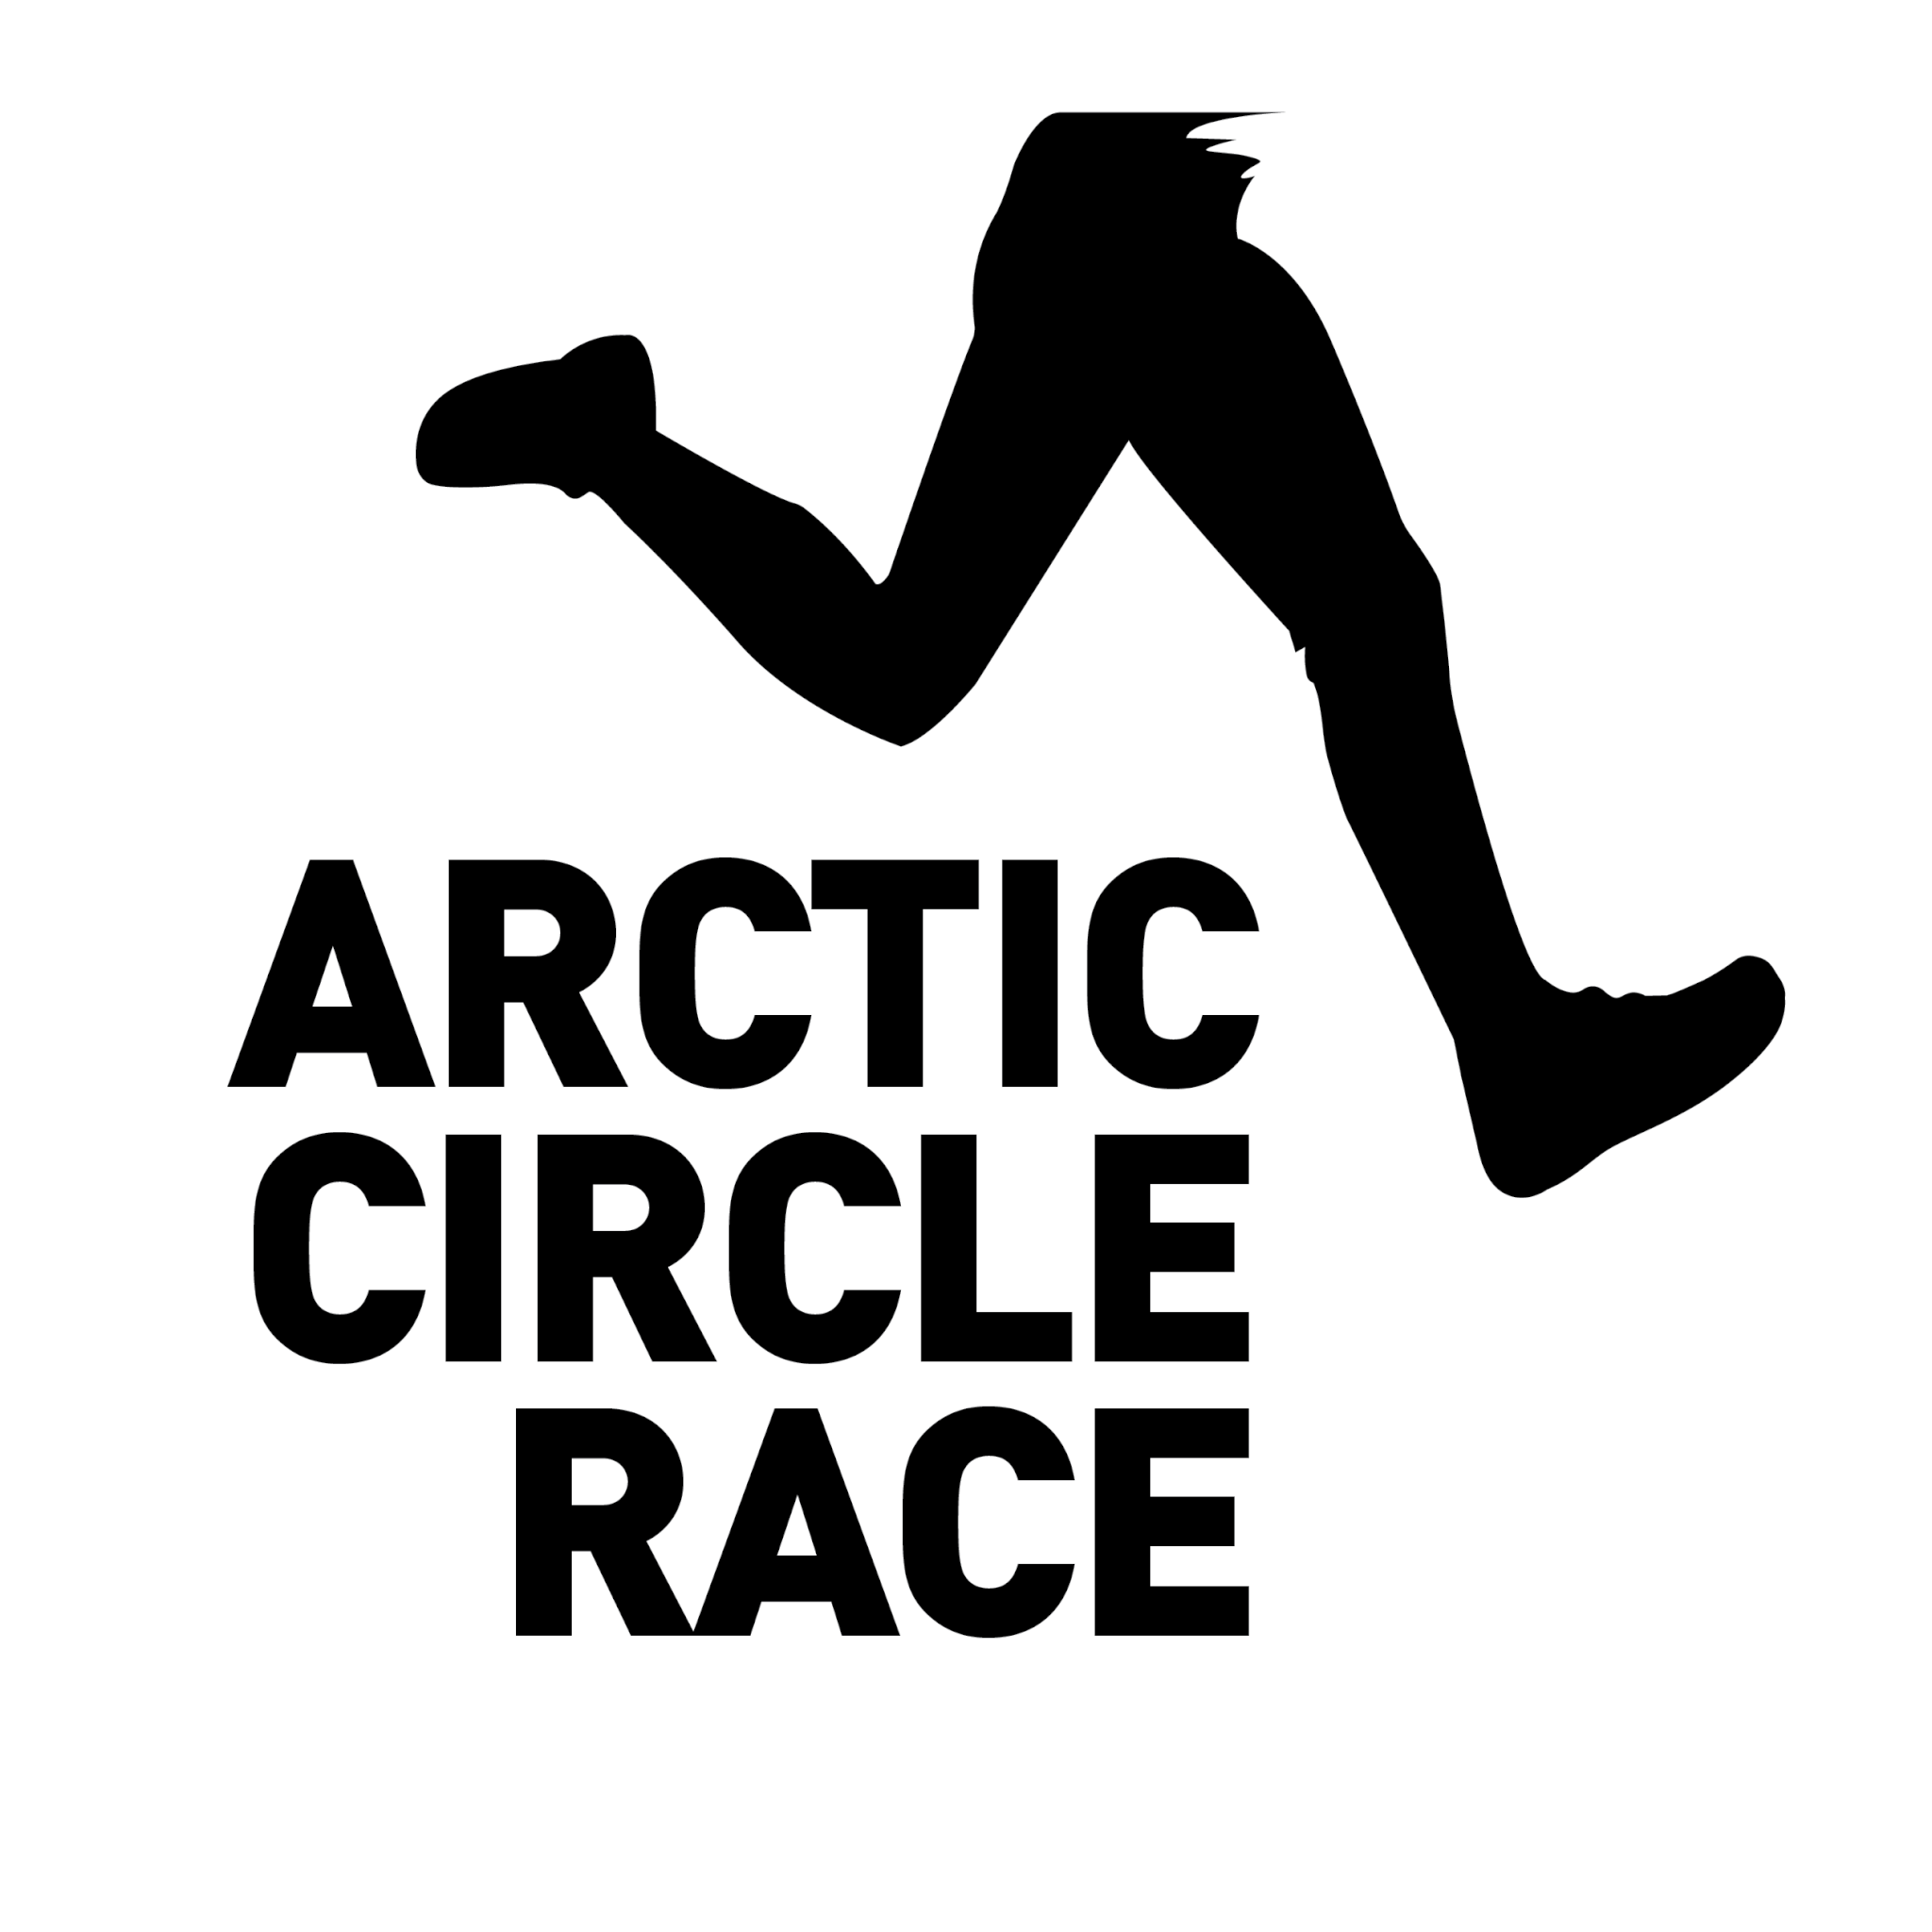 Arctic Circle Race